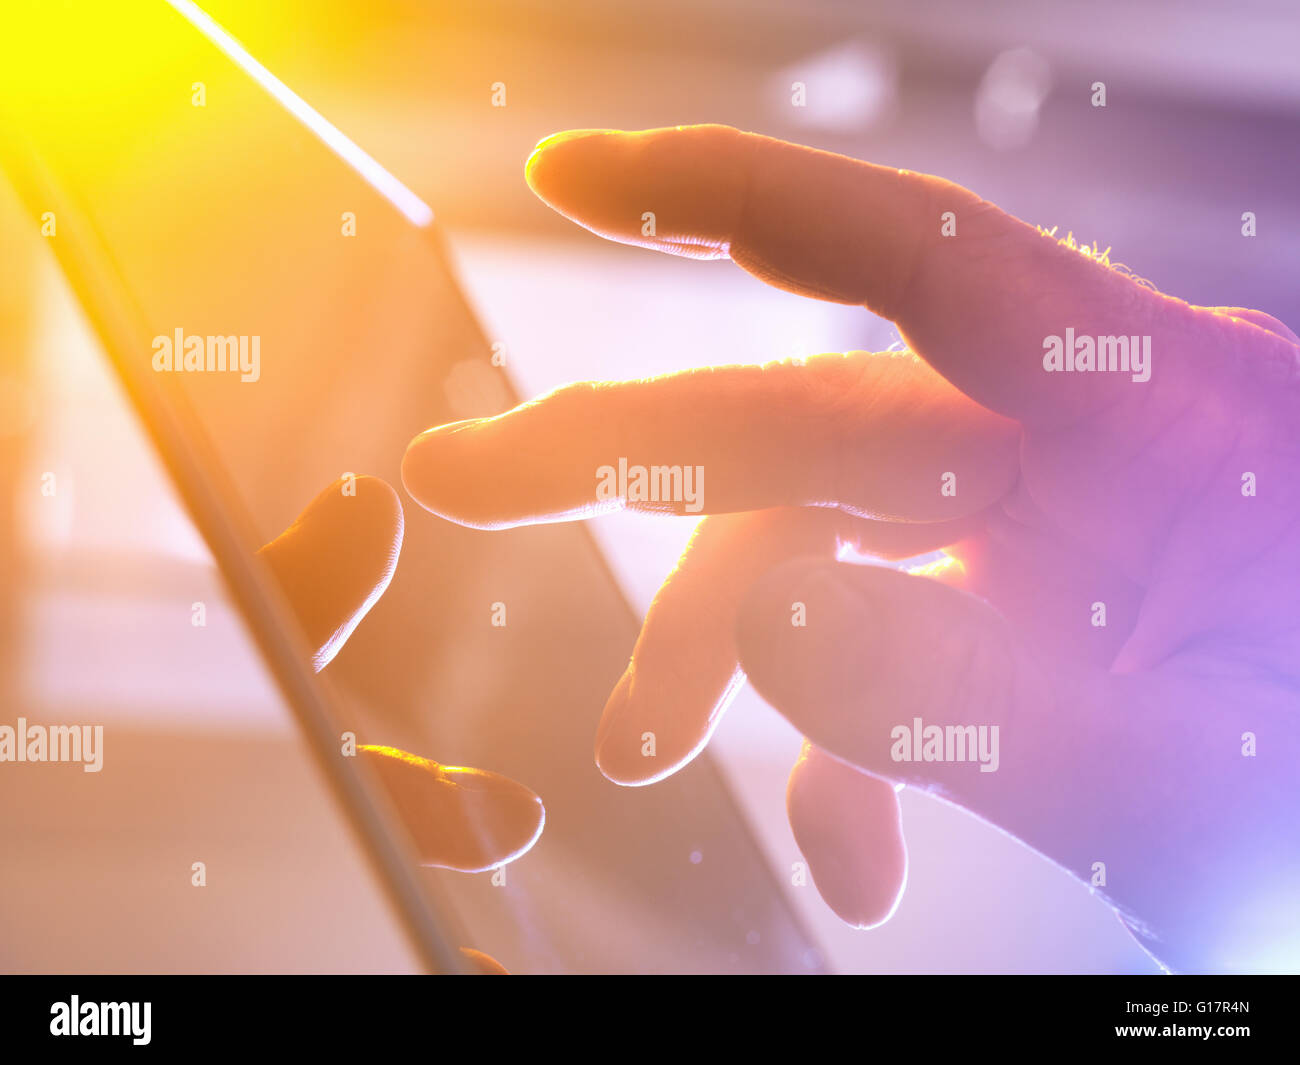 Man using touchscreen device, close-up - Stock Image